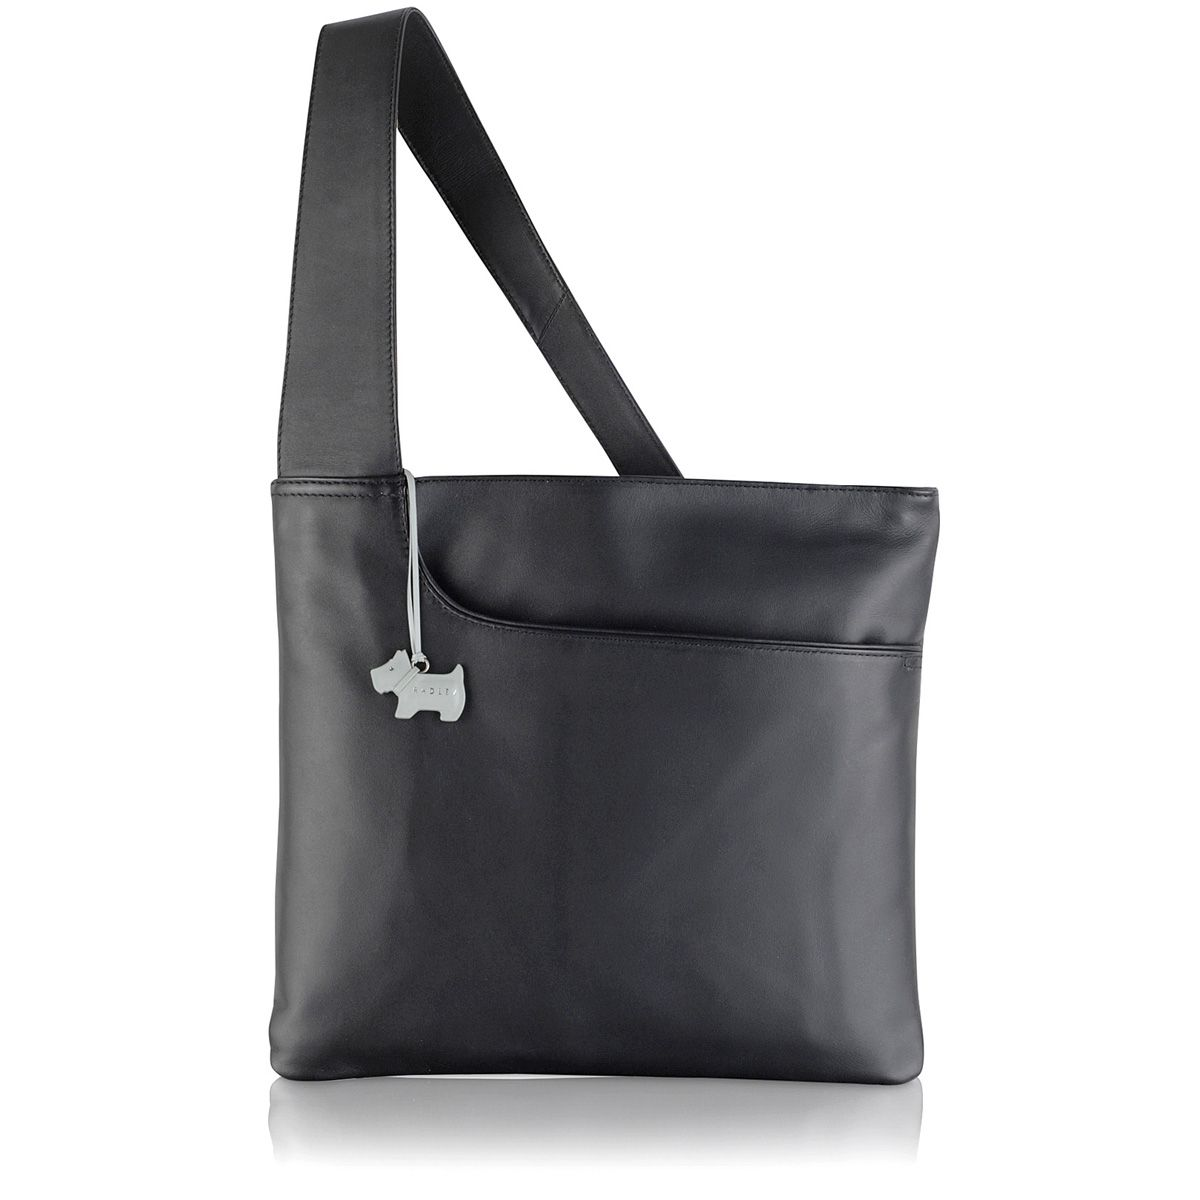 Radley Pocket bag large ziptop acrossbody bag Black